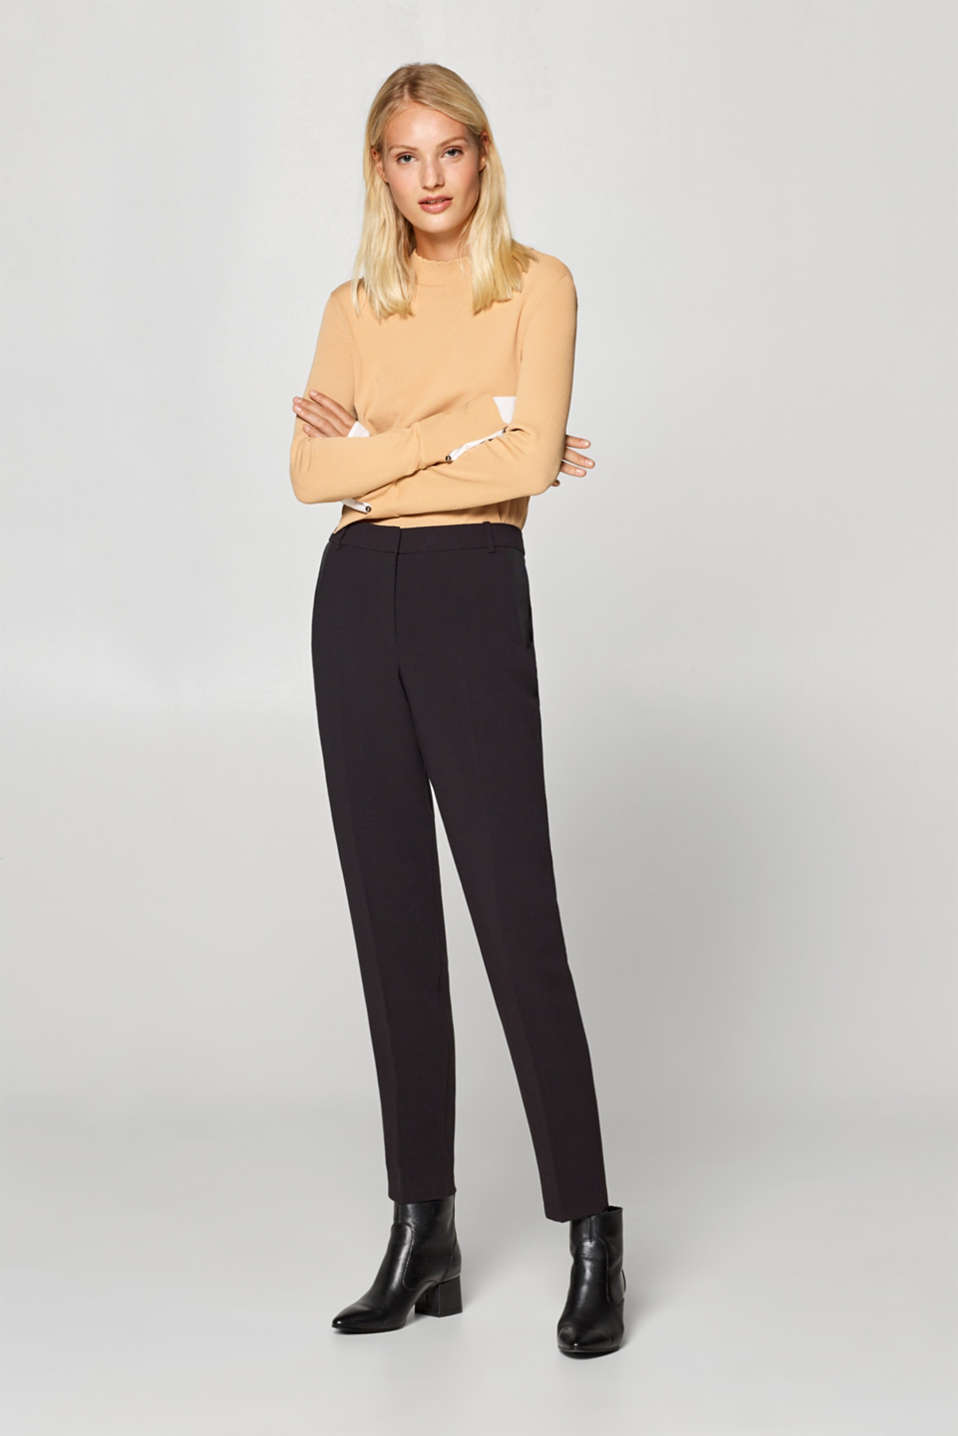 Esprit - Pantalon bi-stretch à plis de repassage permanents